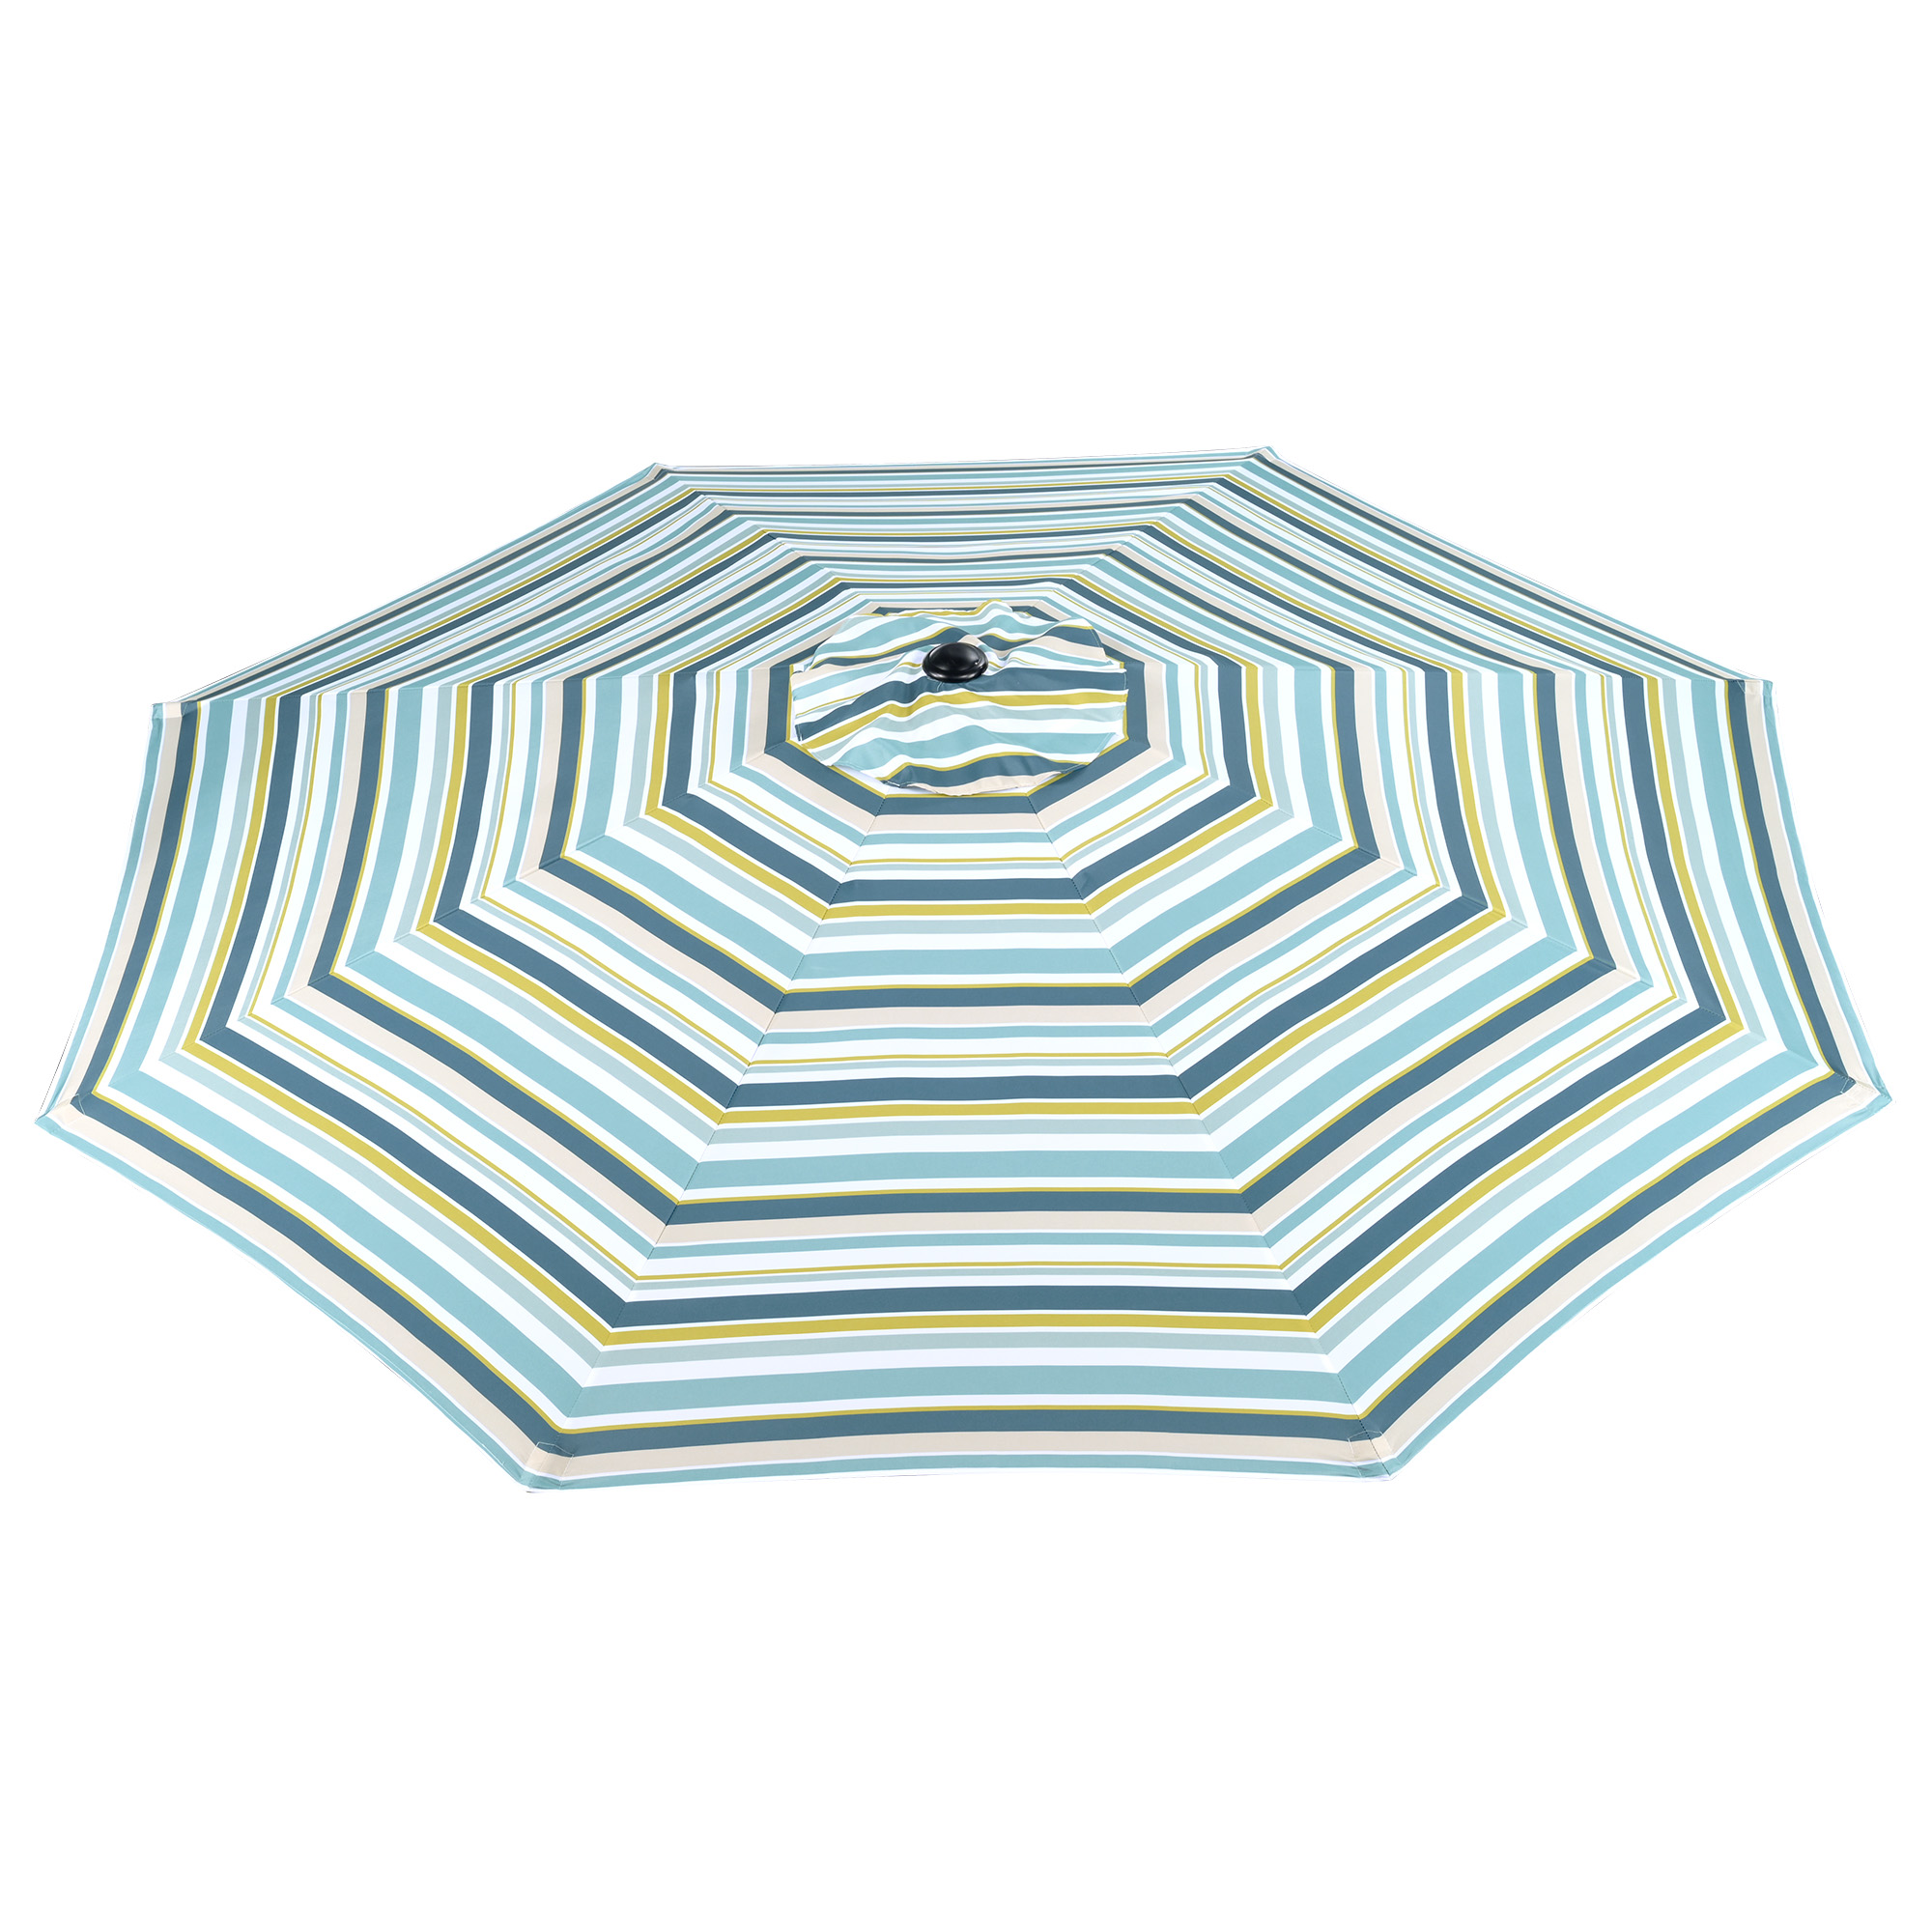 thumbnail 532 - 8'/9'/10'/13' Umbrella Replacement Canopy 8 Rib Outdoor Patio Top Cover Only Opt